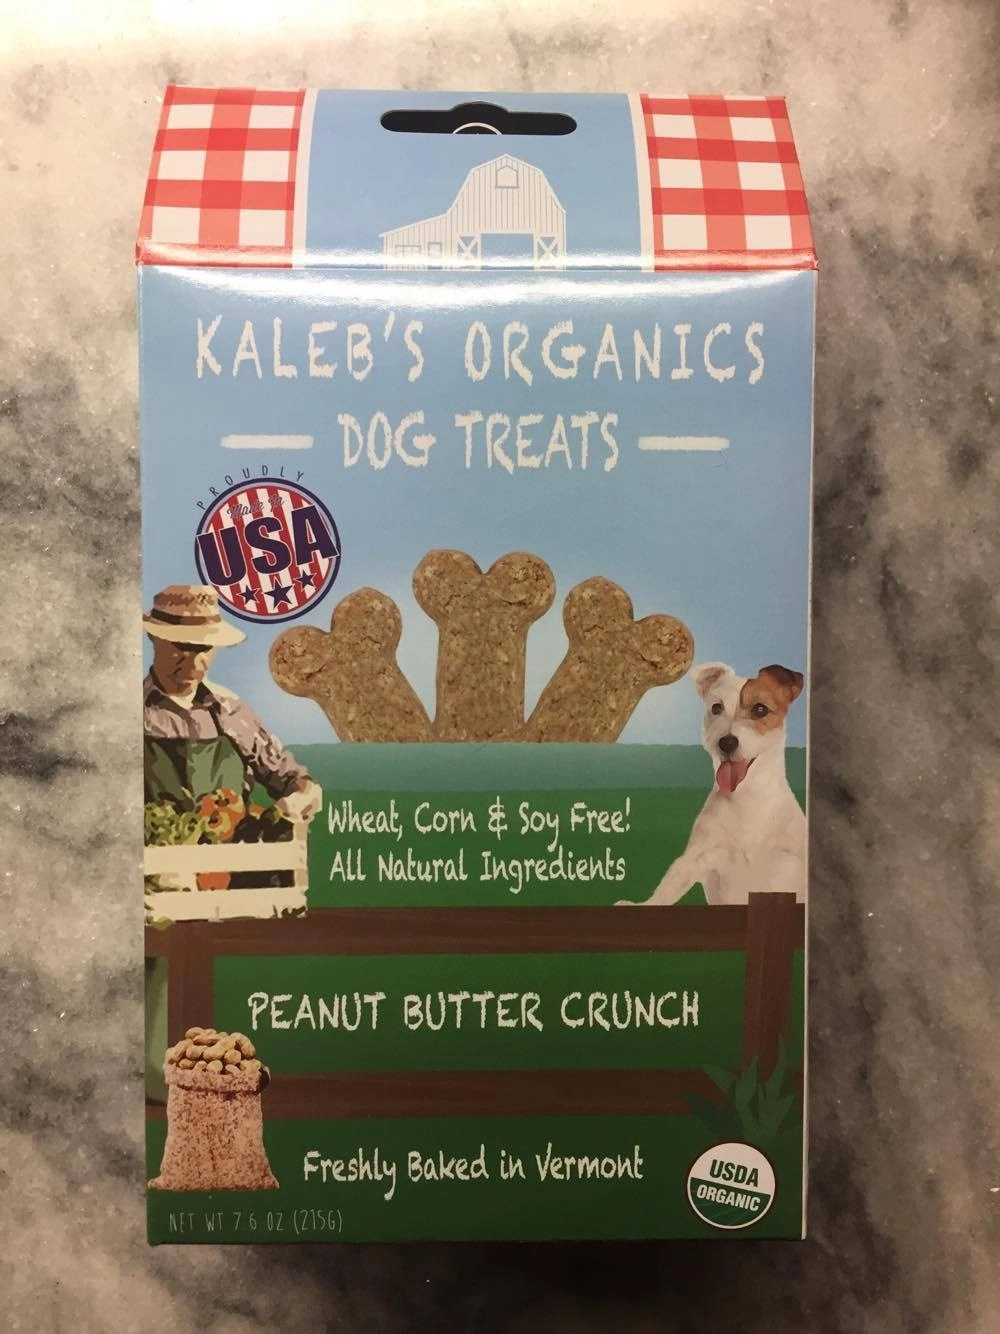 Kaleb's organics for dogs